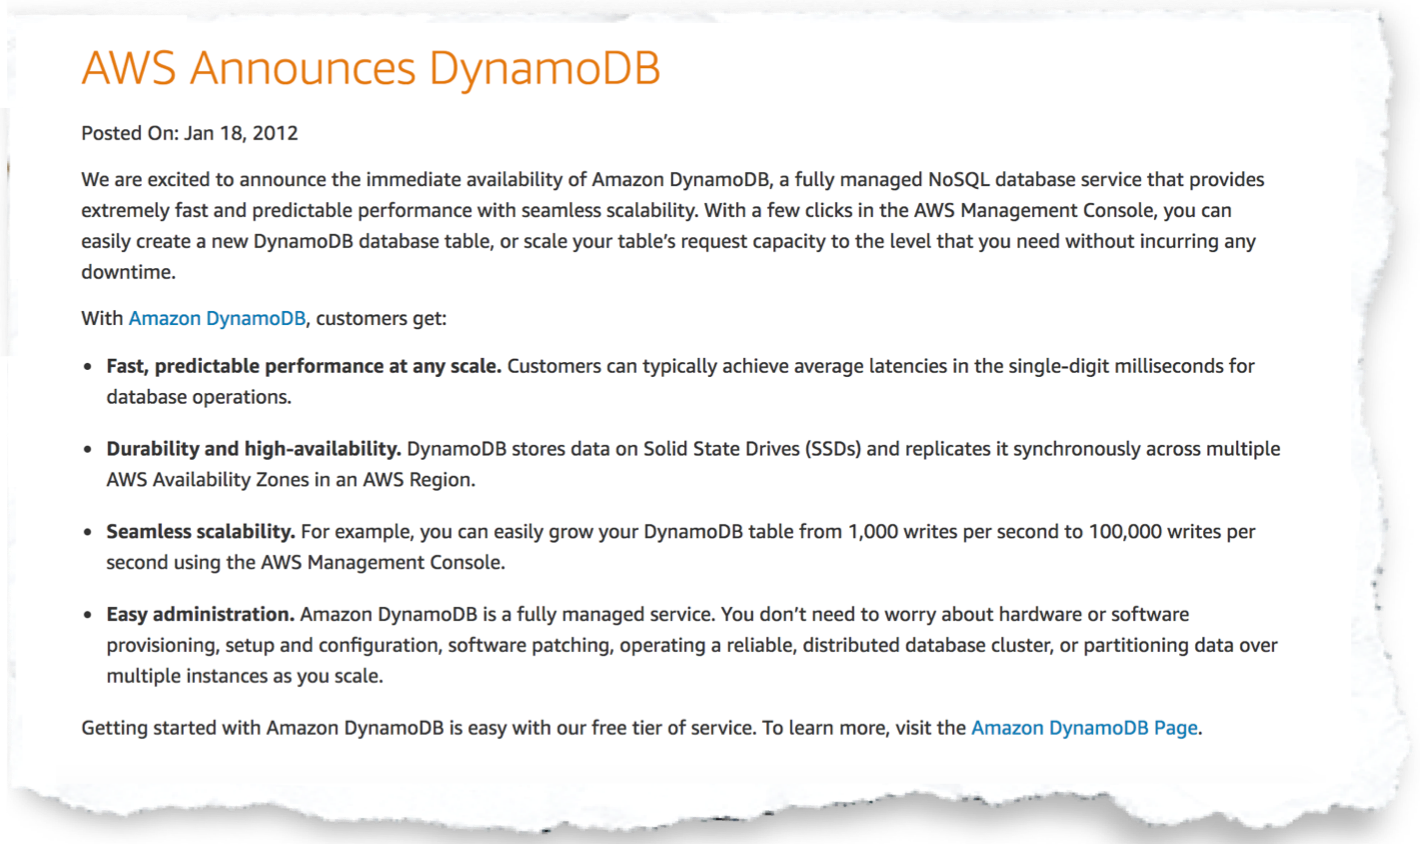 In 2012, AWS announced the availability of DynamoDB as a fully managed  NoSQL data service to customers with the promise of seamless scalability.